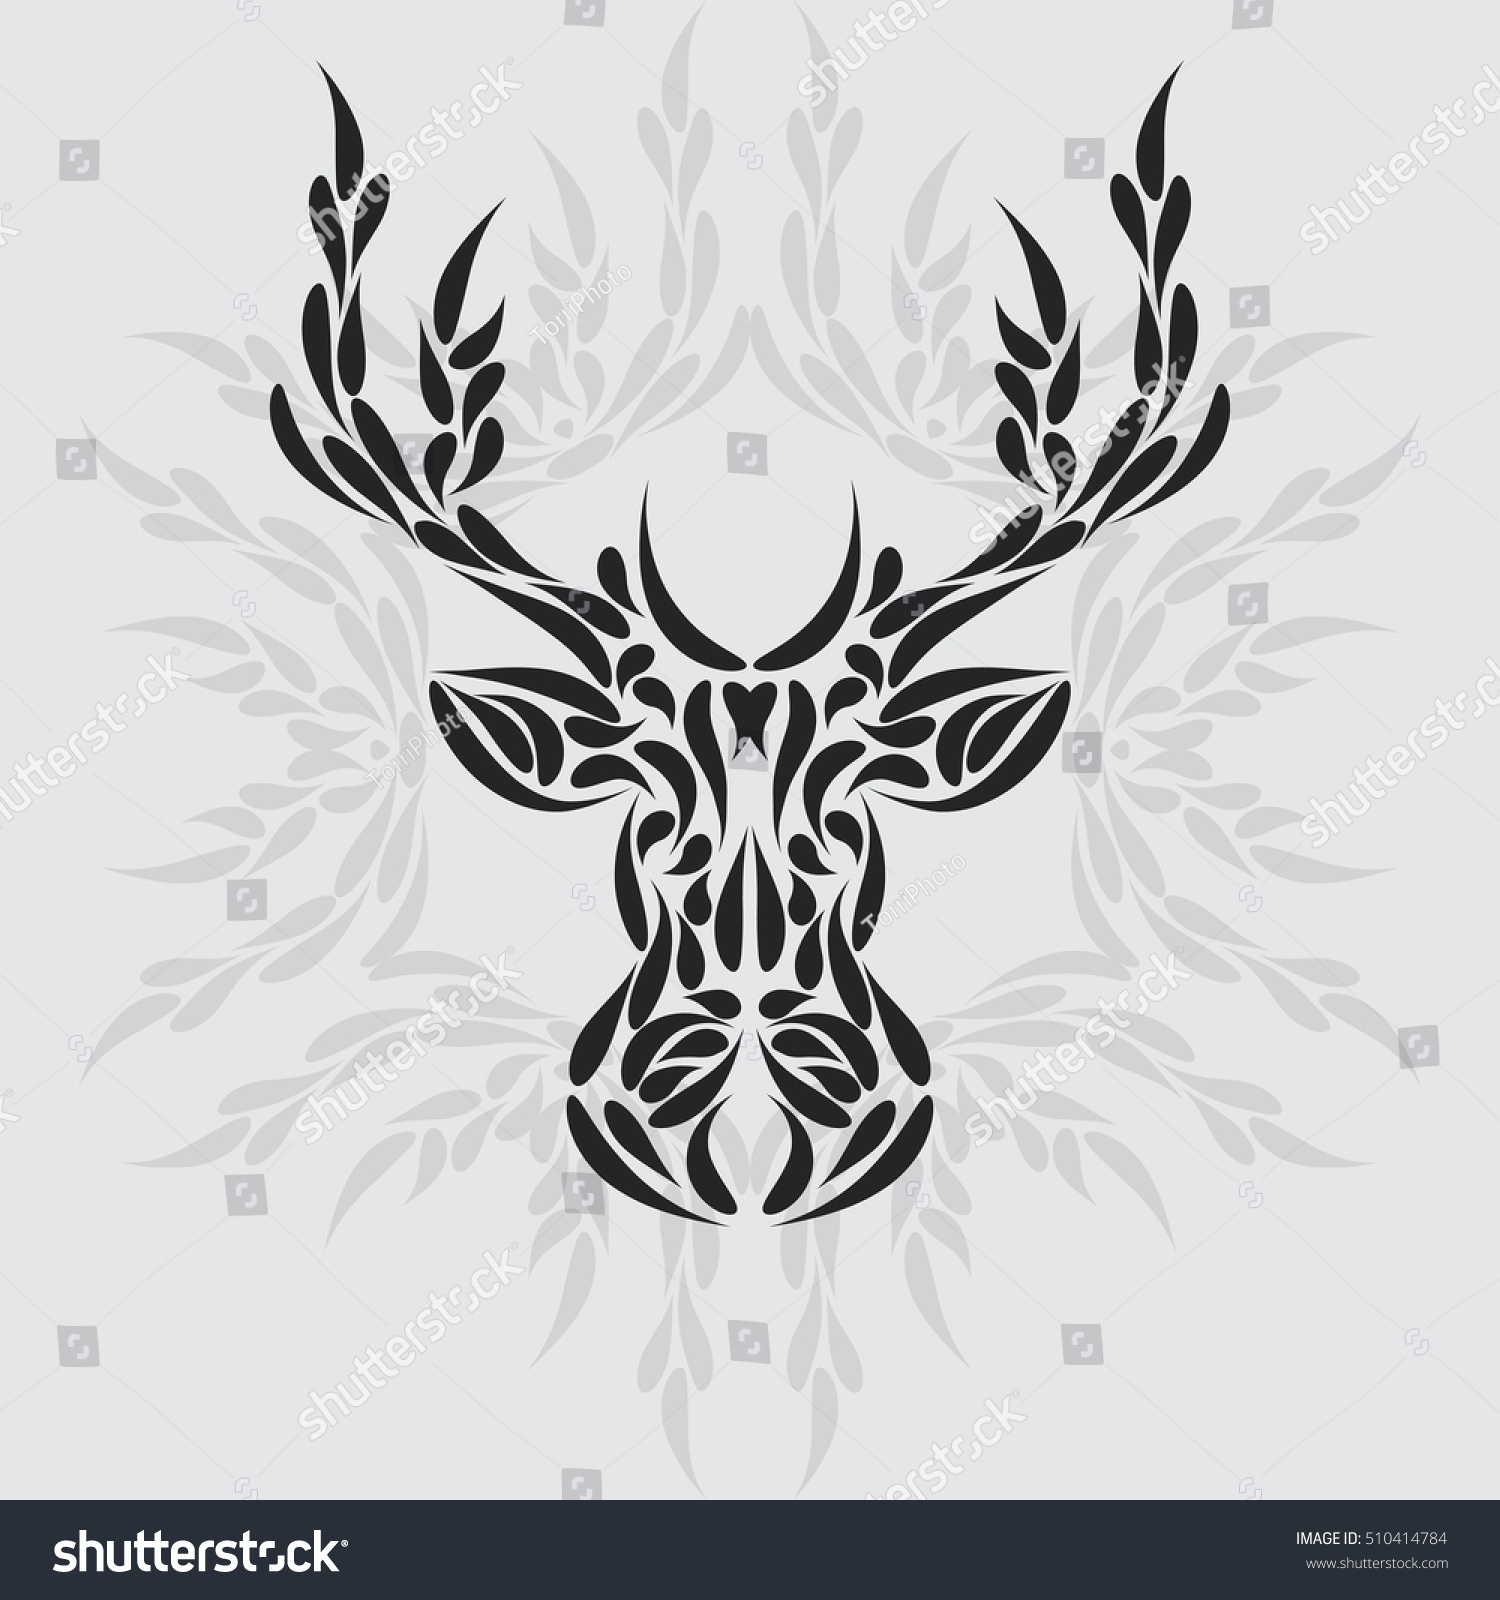 https://www.shutterstock.com/pic-510414784/stock-vector-abstract-symmetric-deer-head-ornament-tribal-tattoo-vector-illustration-eps-8.html